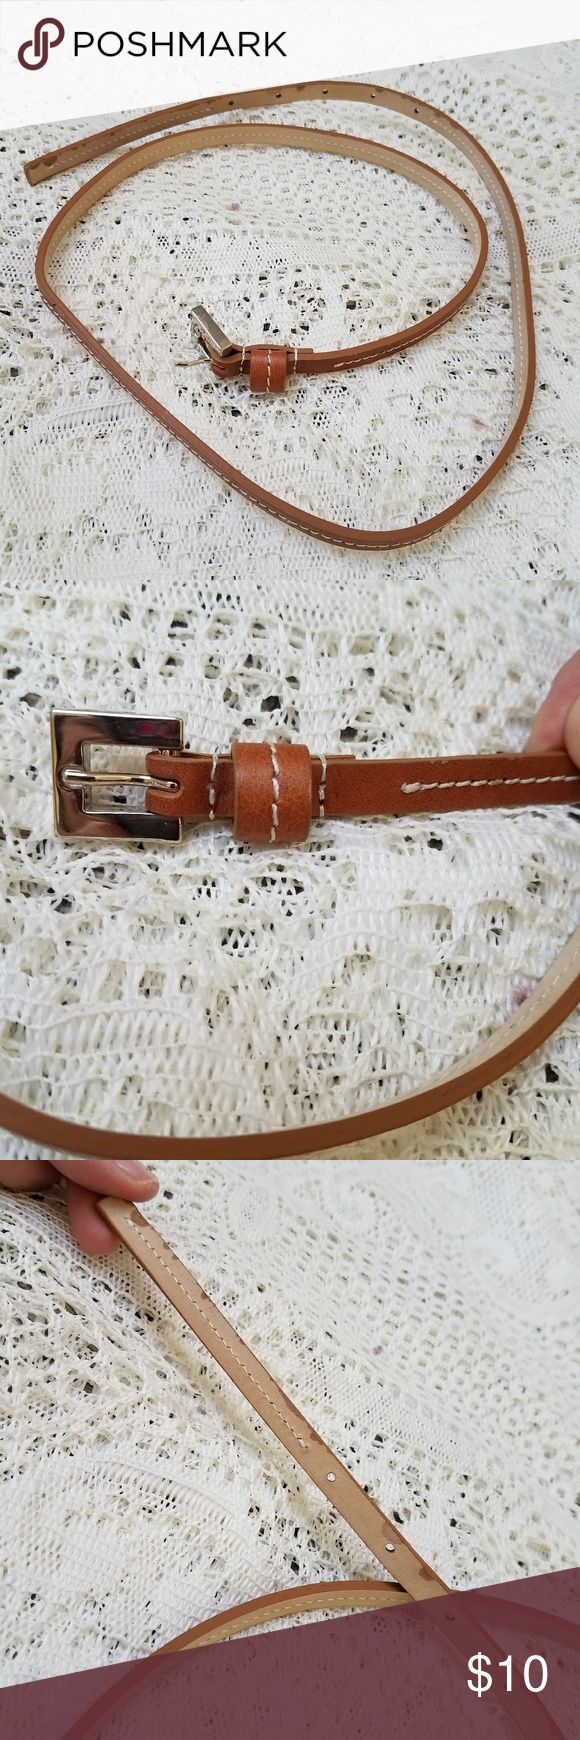 Unmarked Thin Tan Leather Belt Skinny little leather belt, tan with stitching as shown. Good condition. Measures 35 inches to last hole, and 3/8 inches wide. Silver tone buckle. Accessories Belts